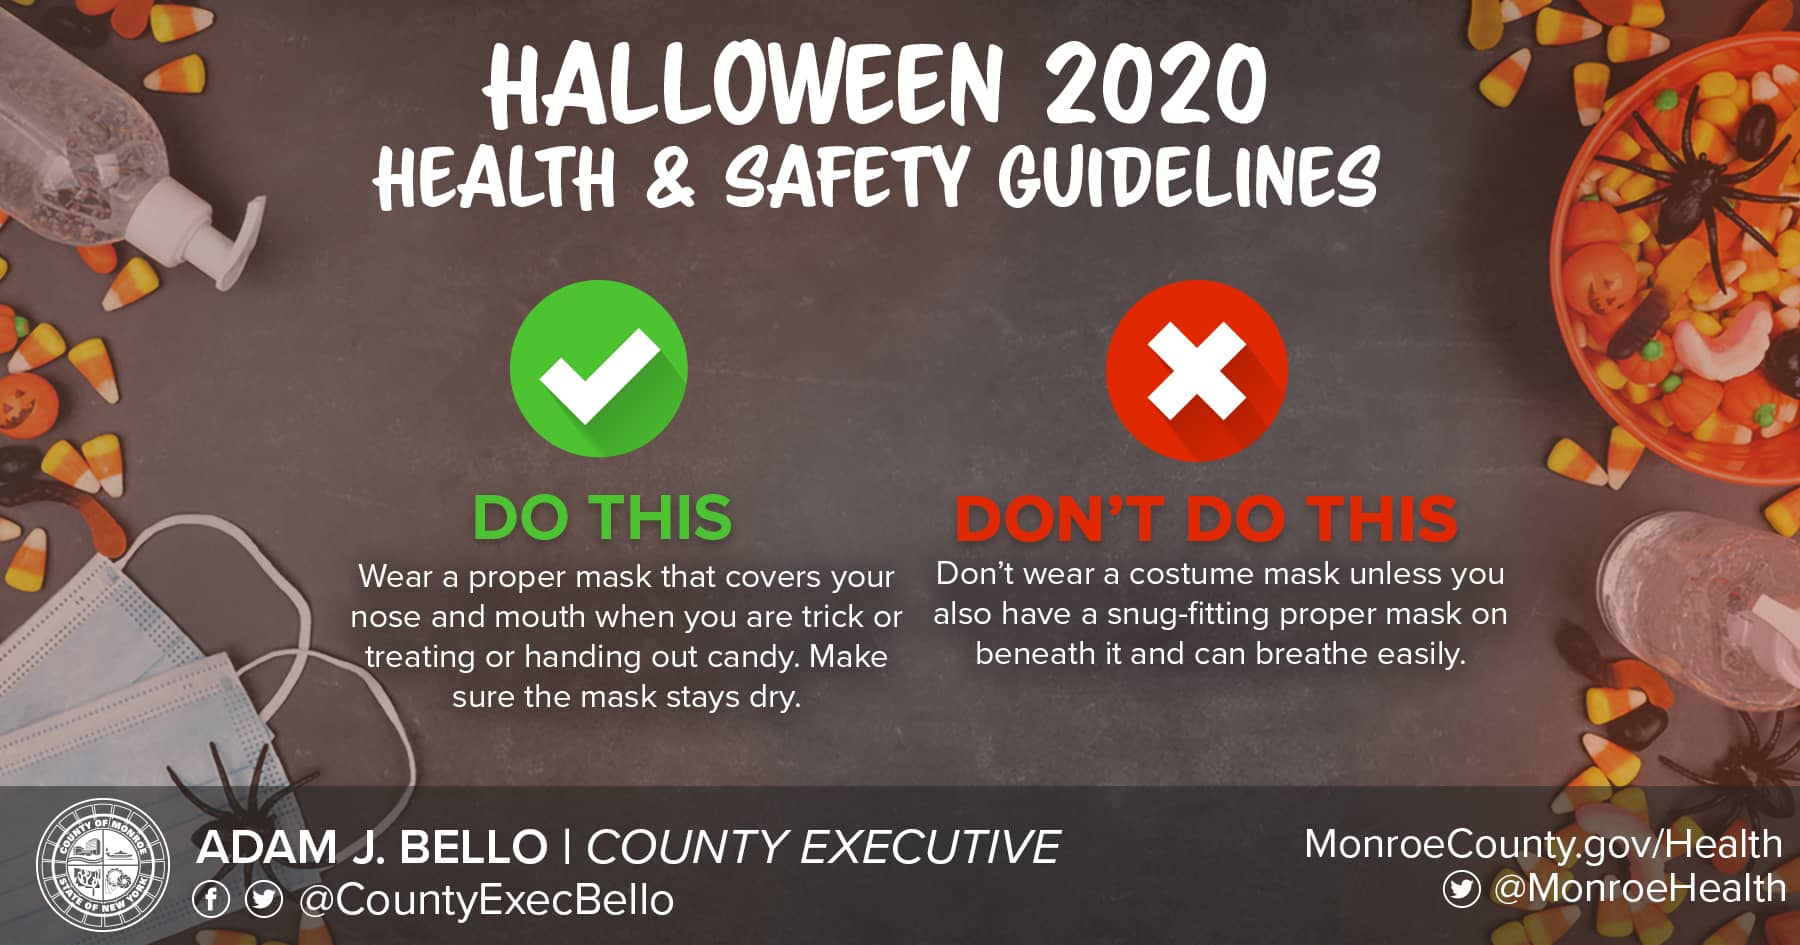 Halloween Rochester Ny 2020 Monroe County's Halloween 2020 health and safety guidelines for